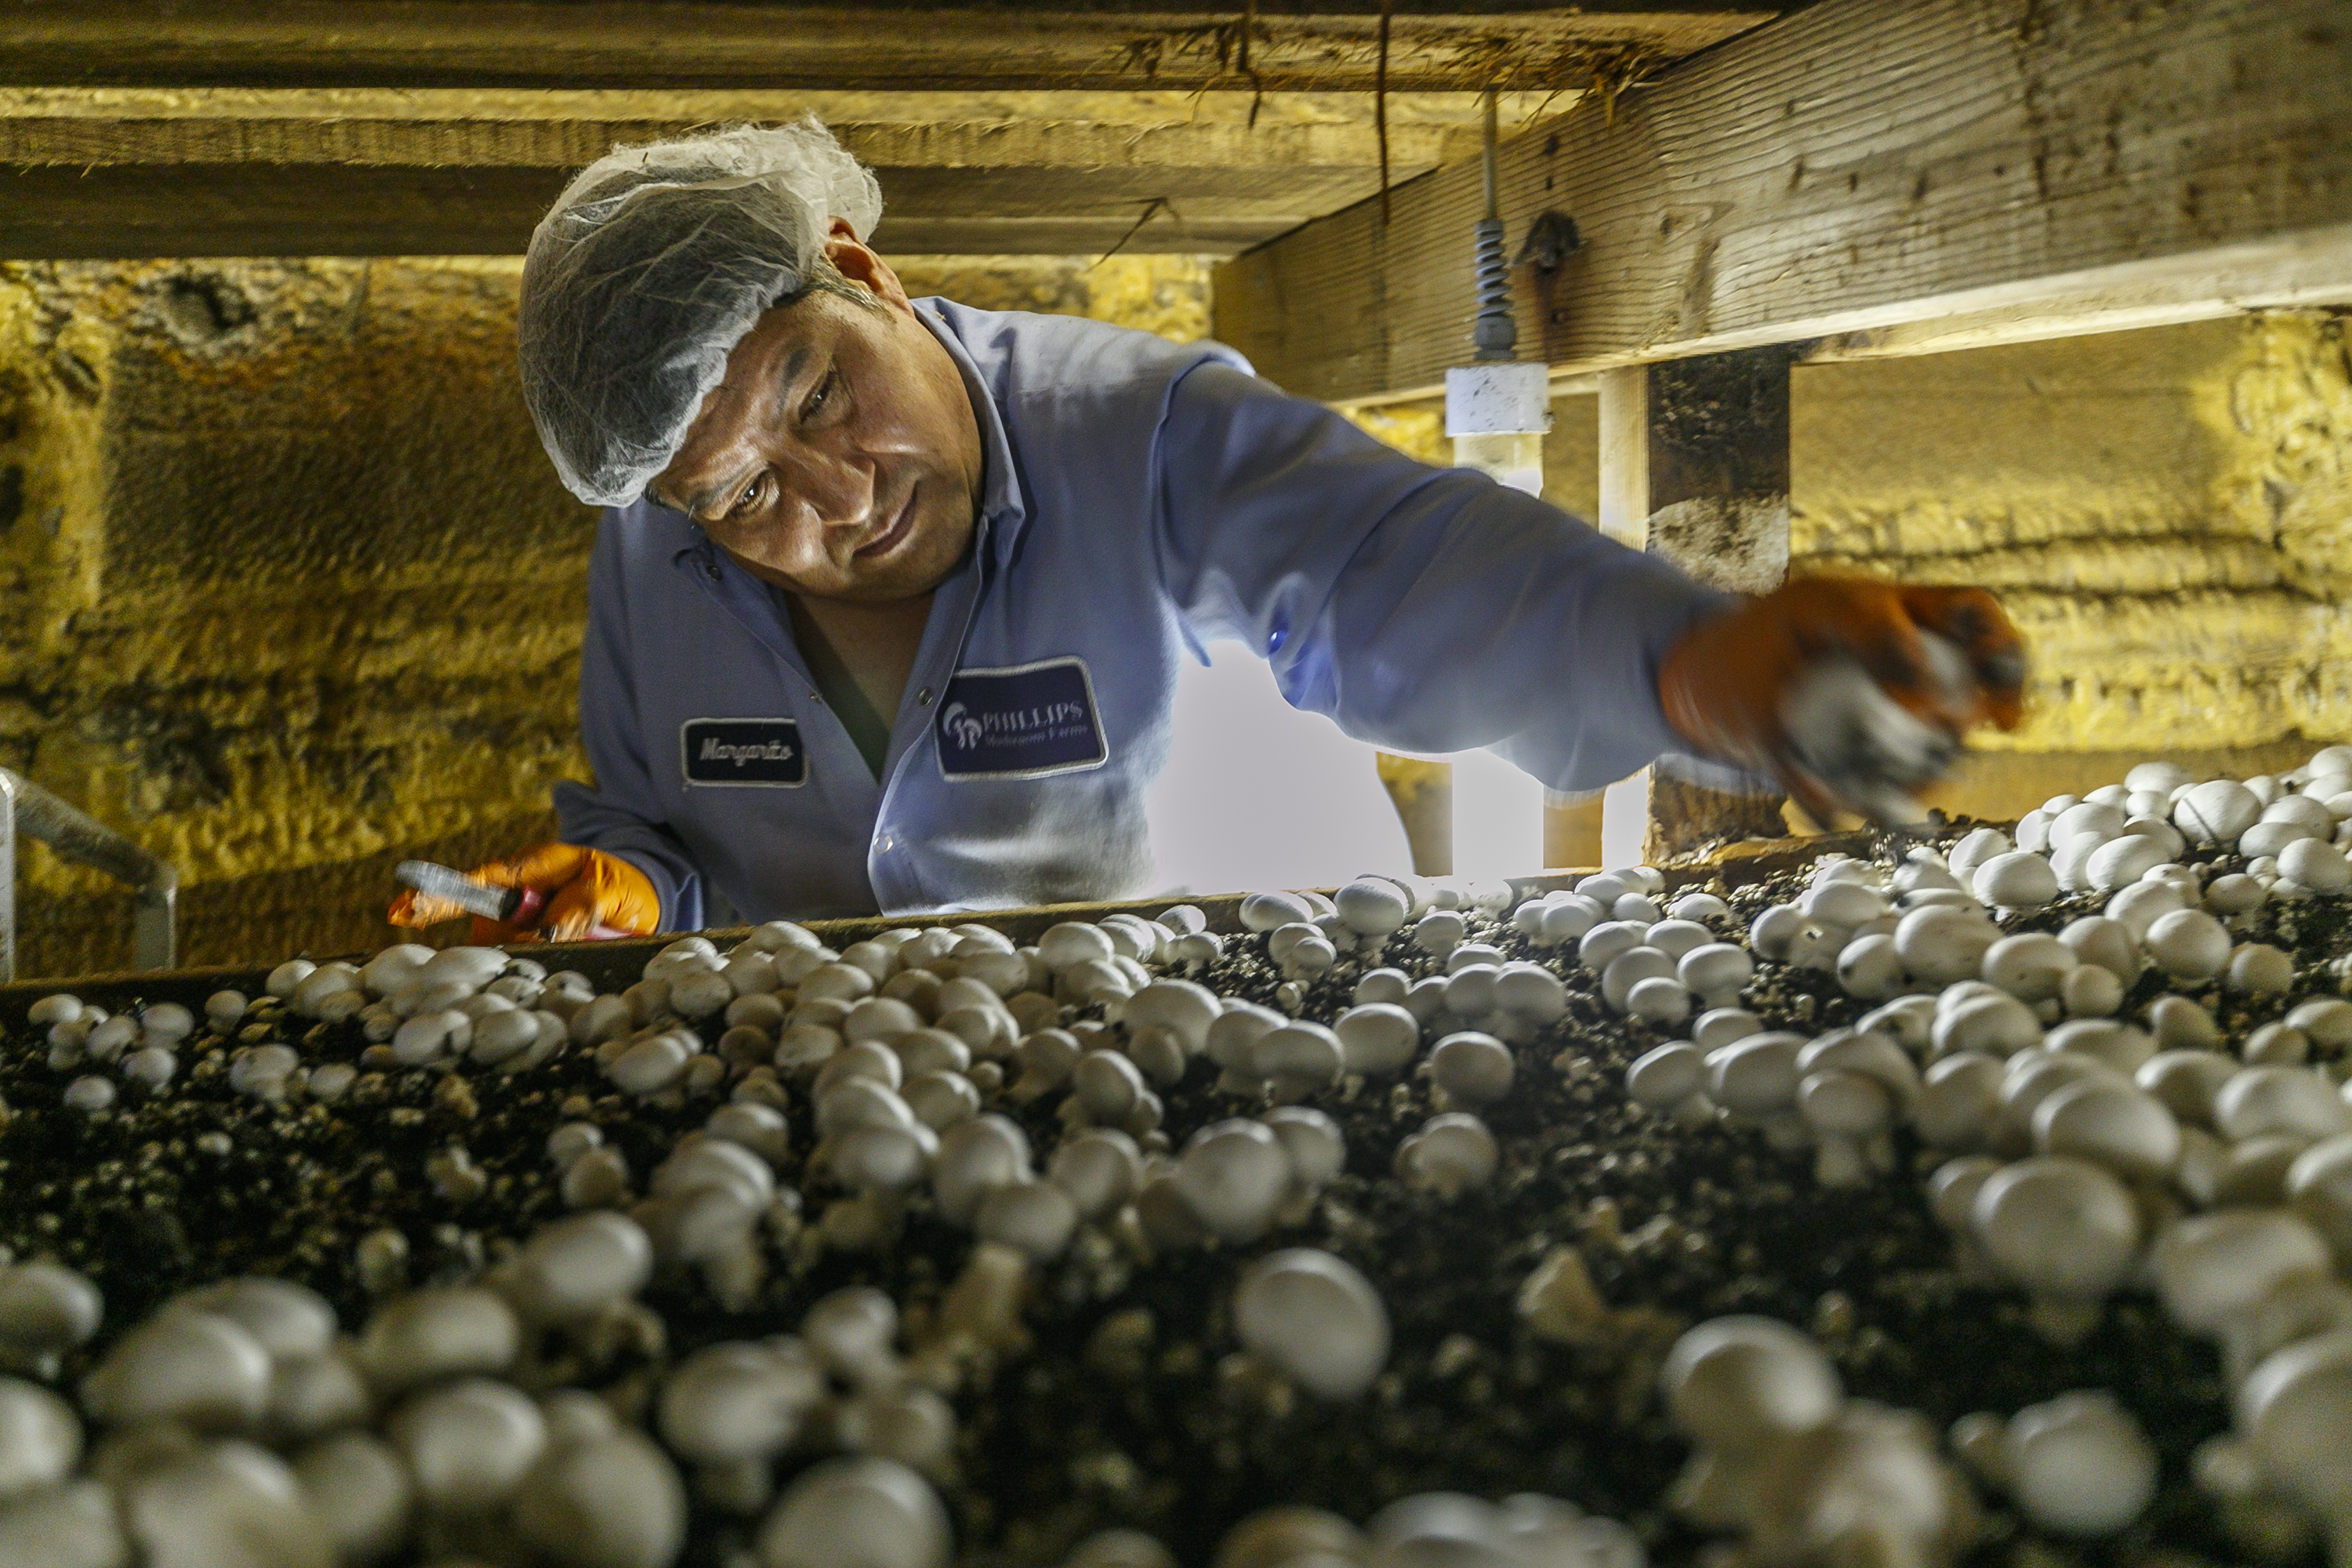 Kennett Square Mushroom Grower S 115 Million Expansion Is A Big Bet For New York Investor